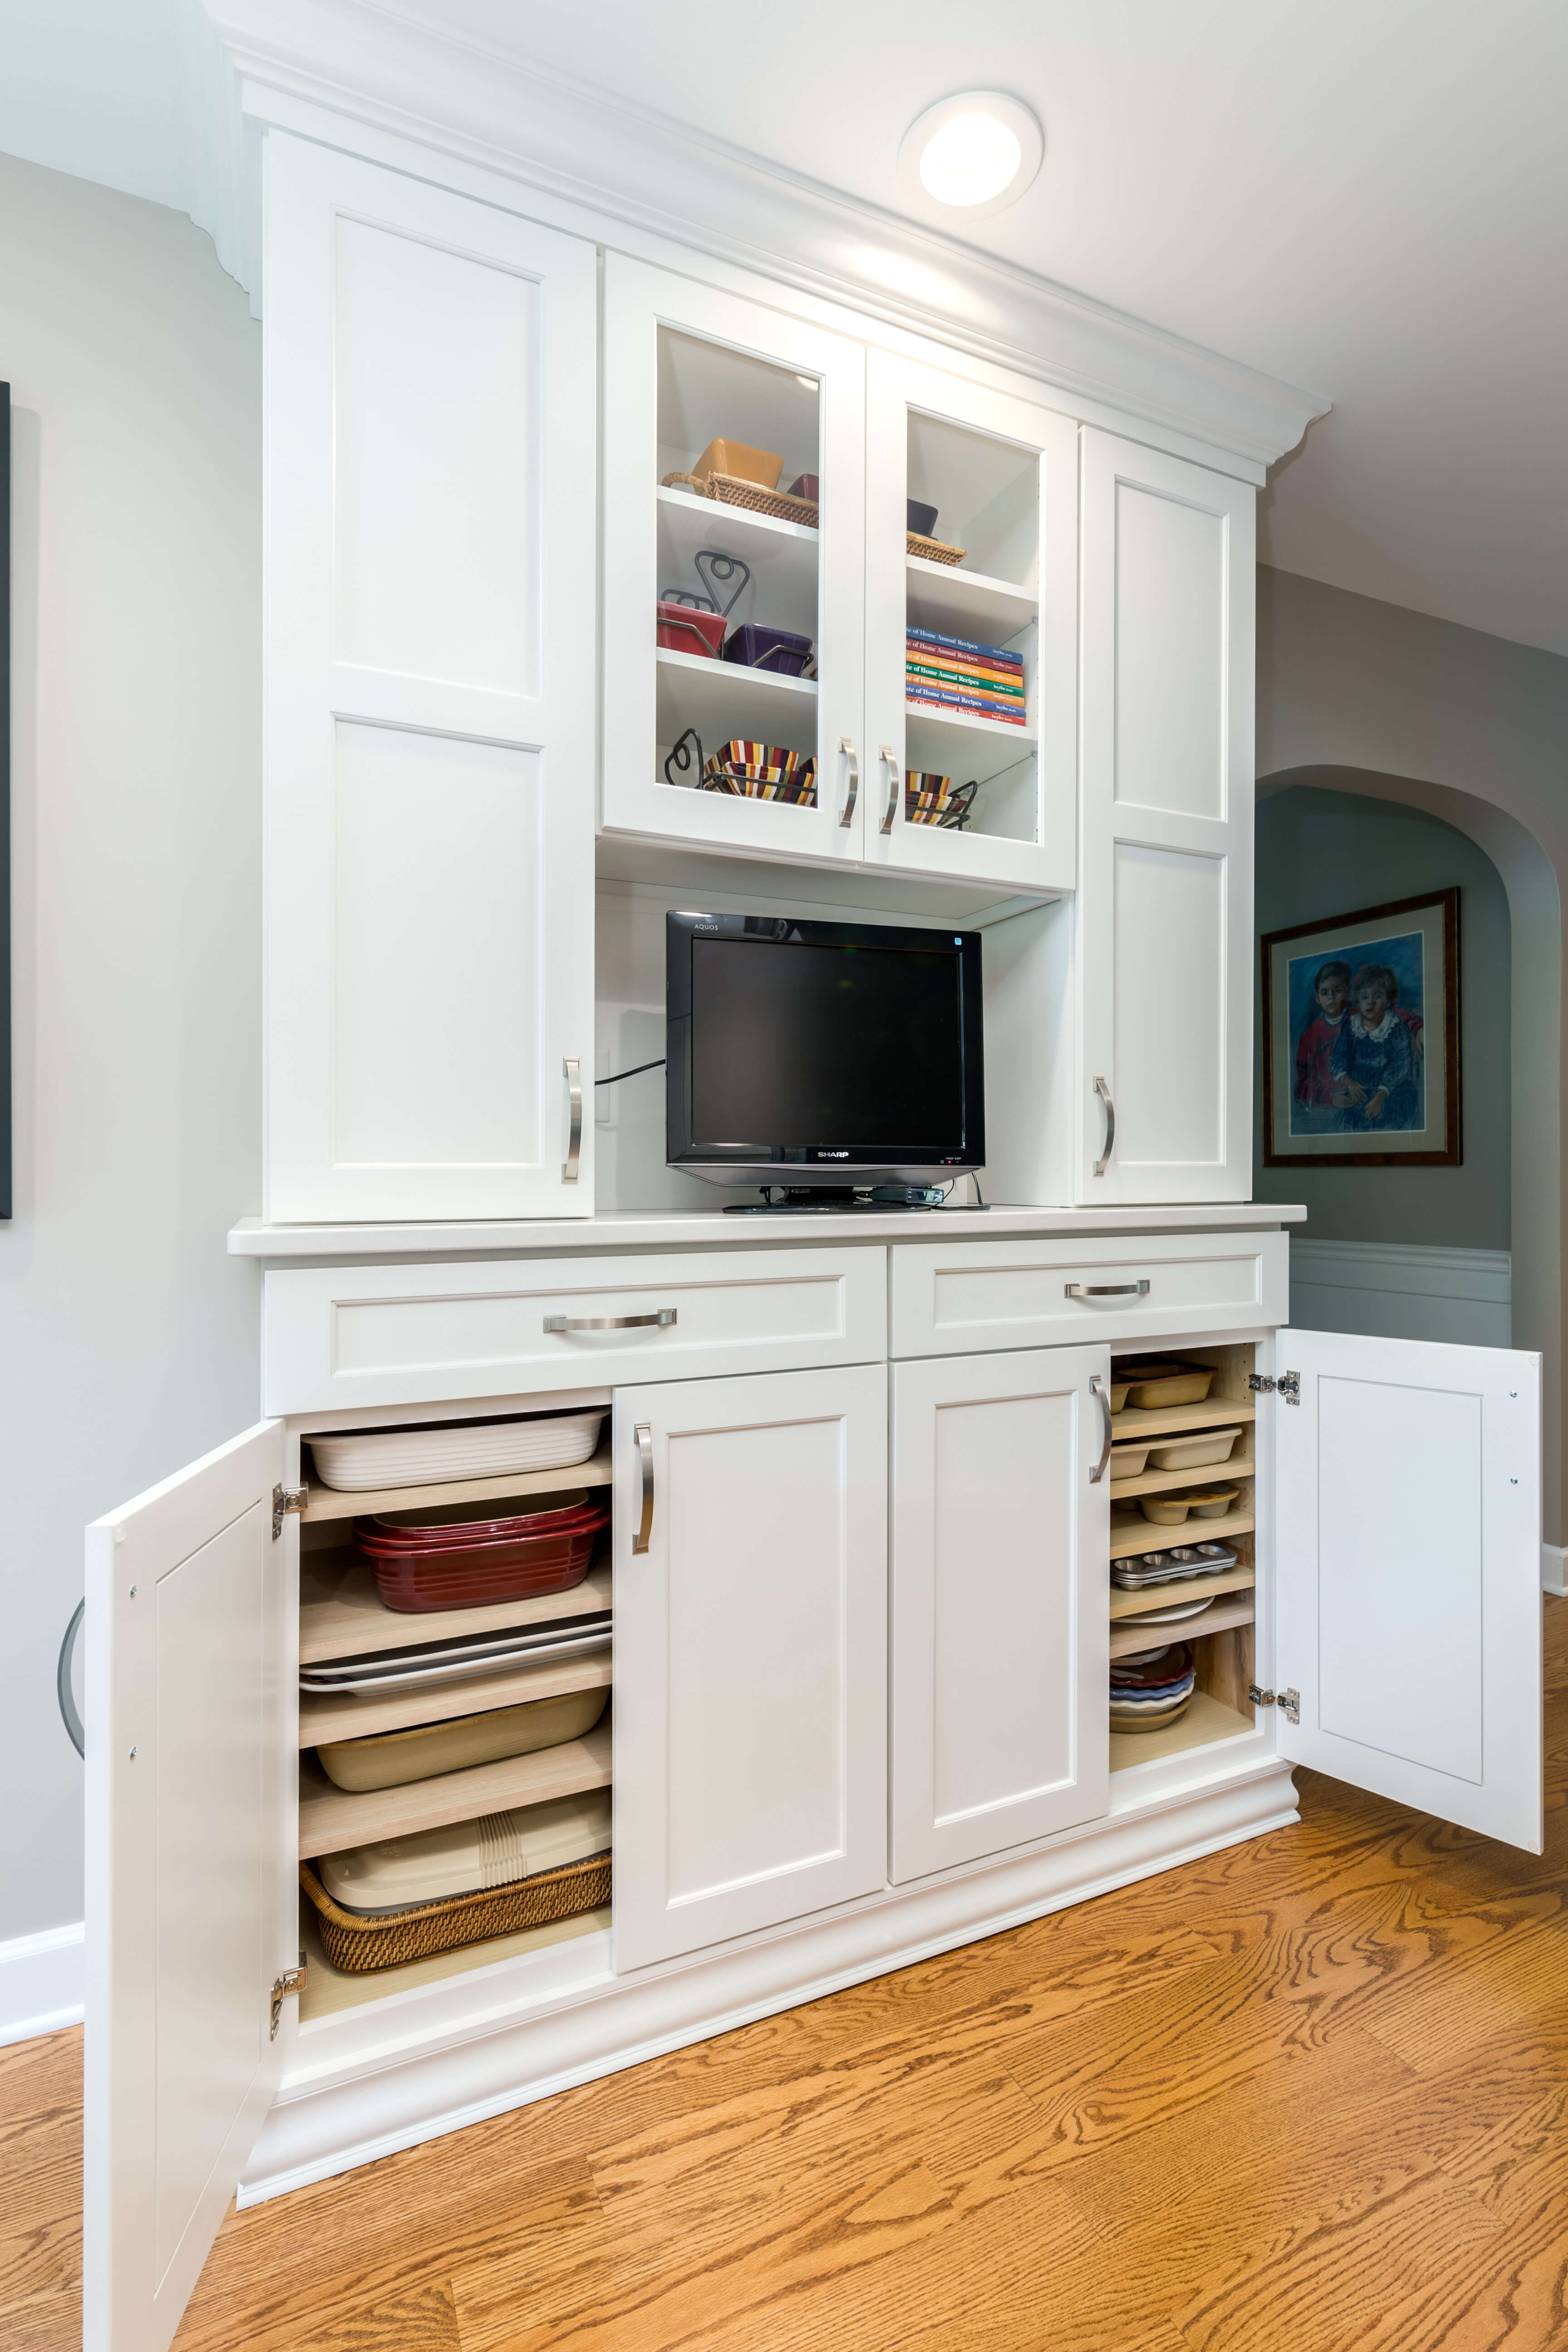 Dura Supreme cabinetry design by CR Cabinetry.